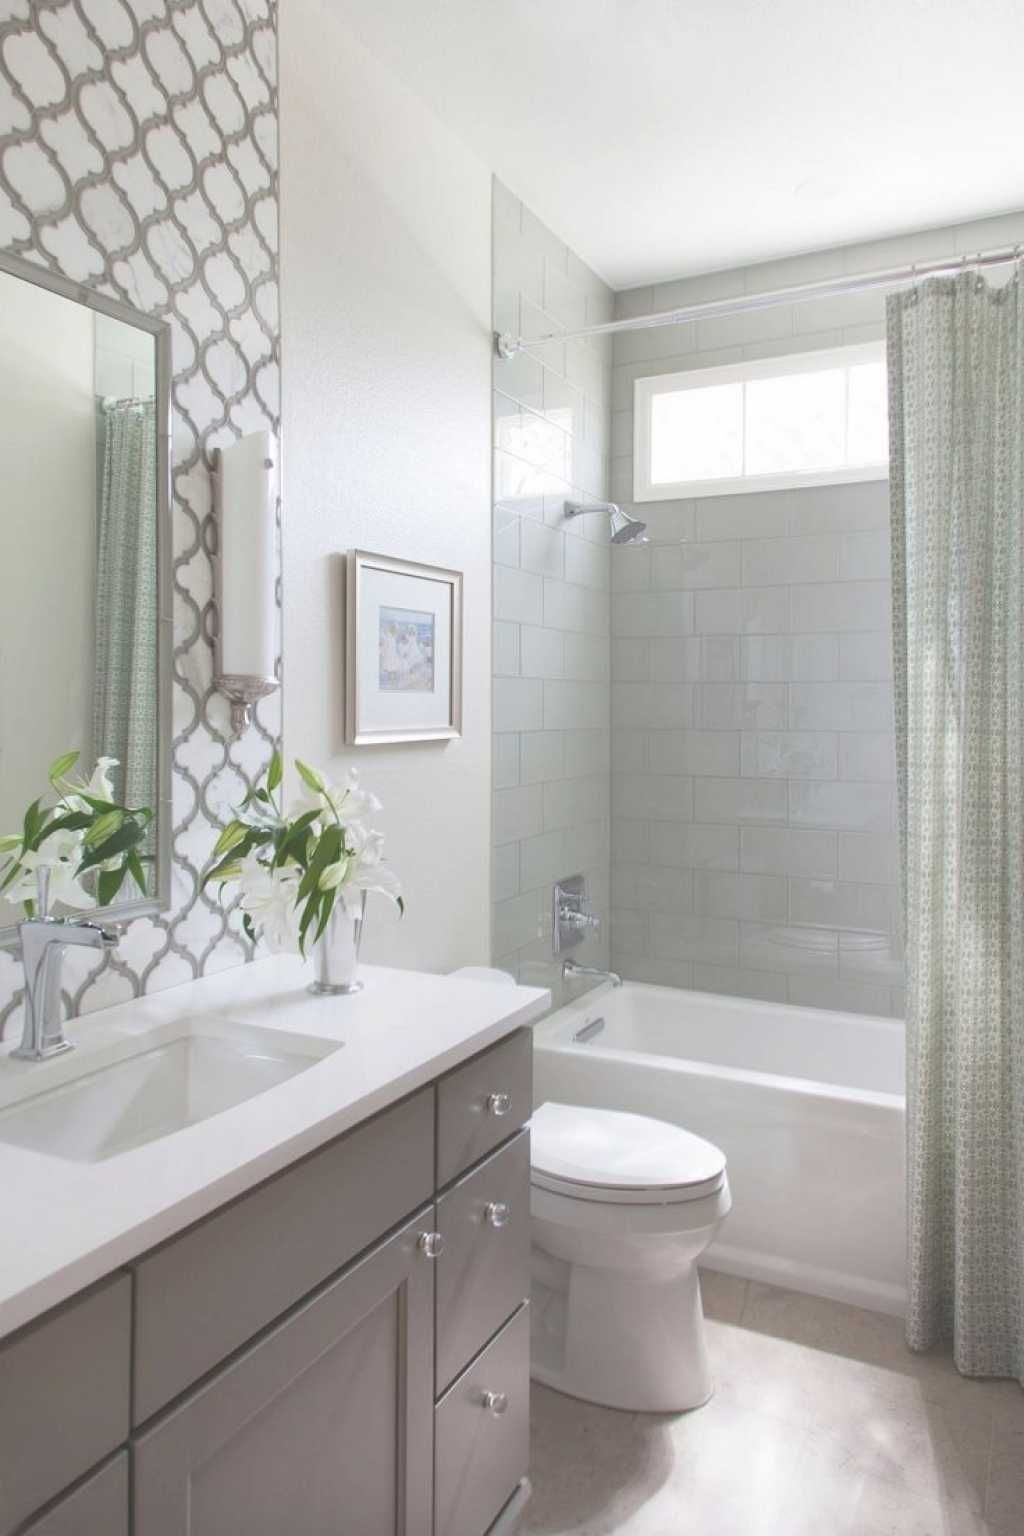 100 Small Bathroom Ideas With Tub And Shower Neutral Interior Paint Colors Check More